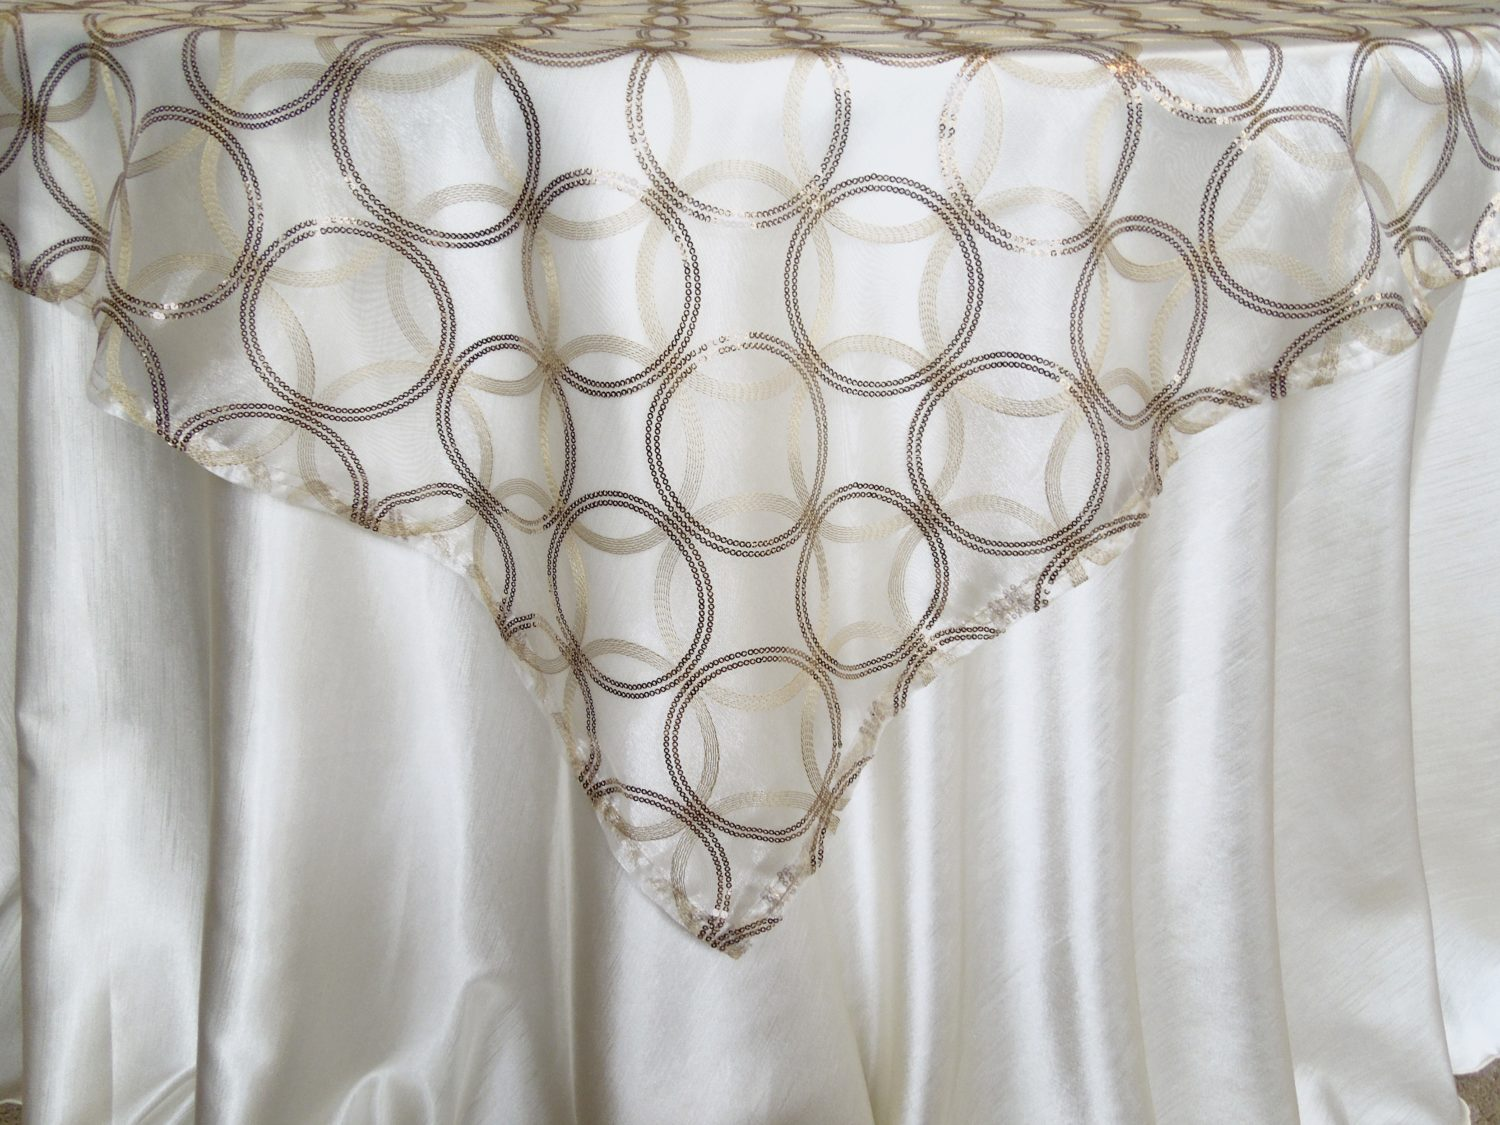 Rental Table Overlay Sheer Gold Embroidery And Sequins Centerpiece Linen Decor